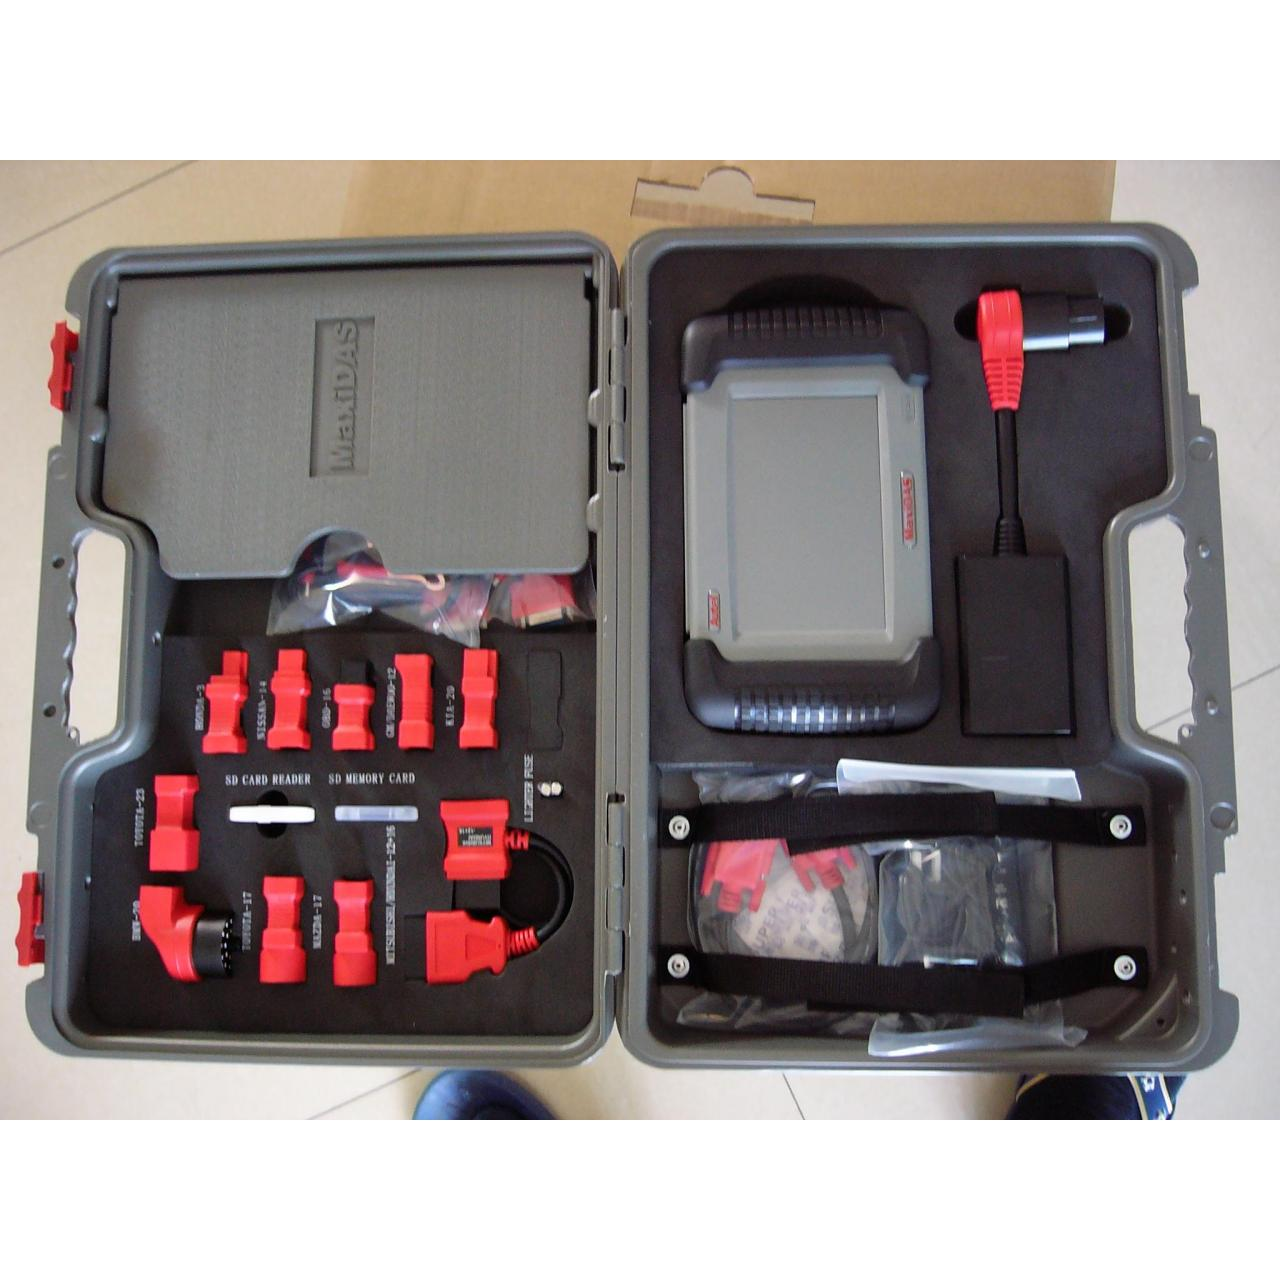 DS708 Automotive Diagnostic & Analysis System Tool